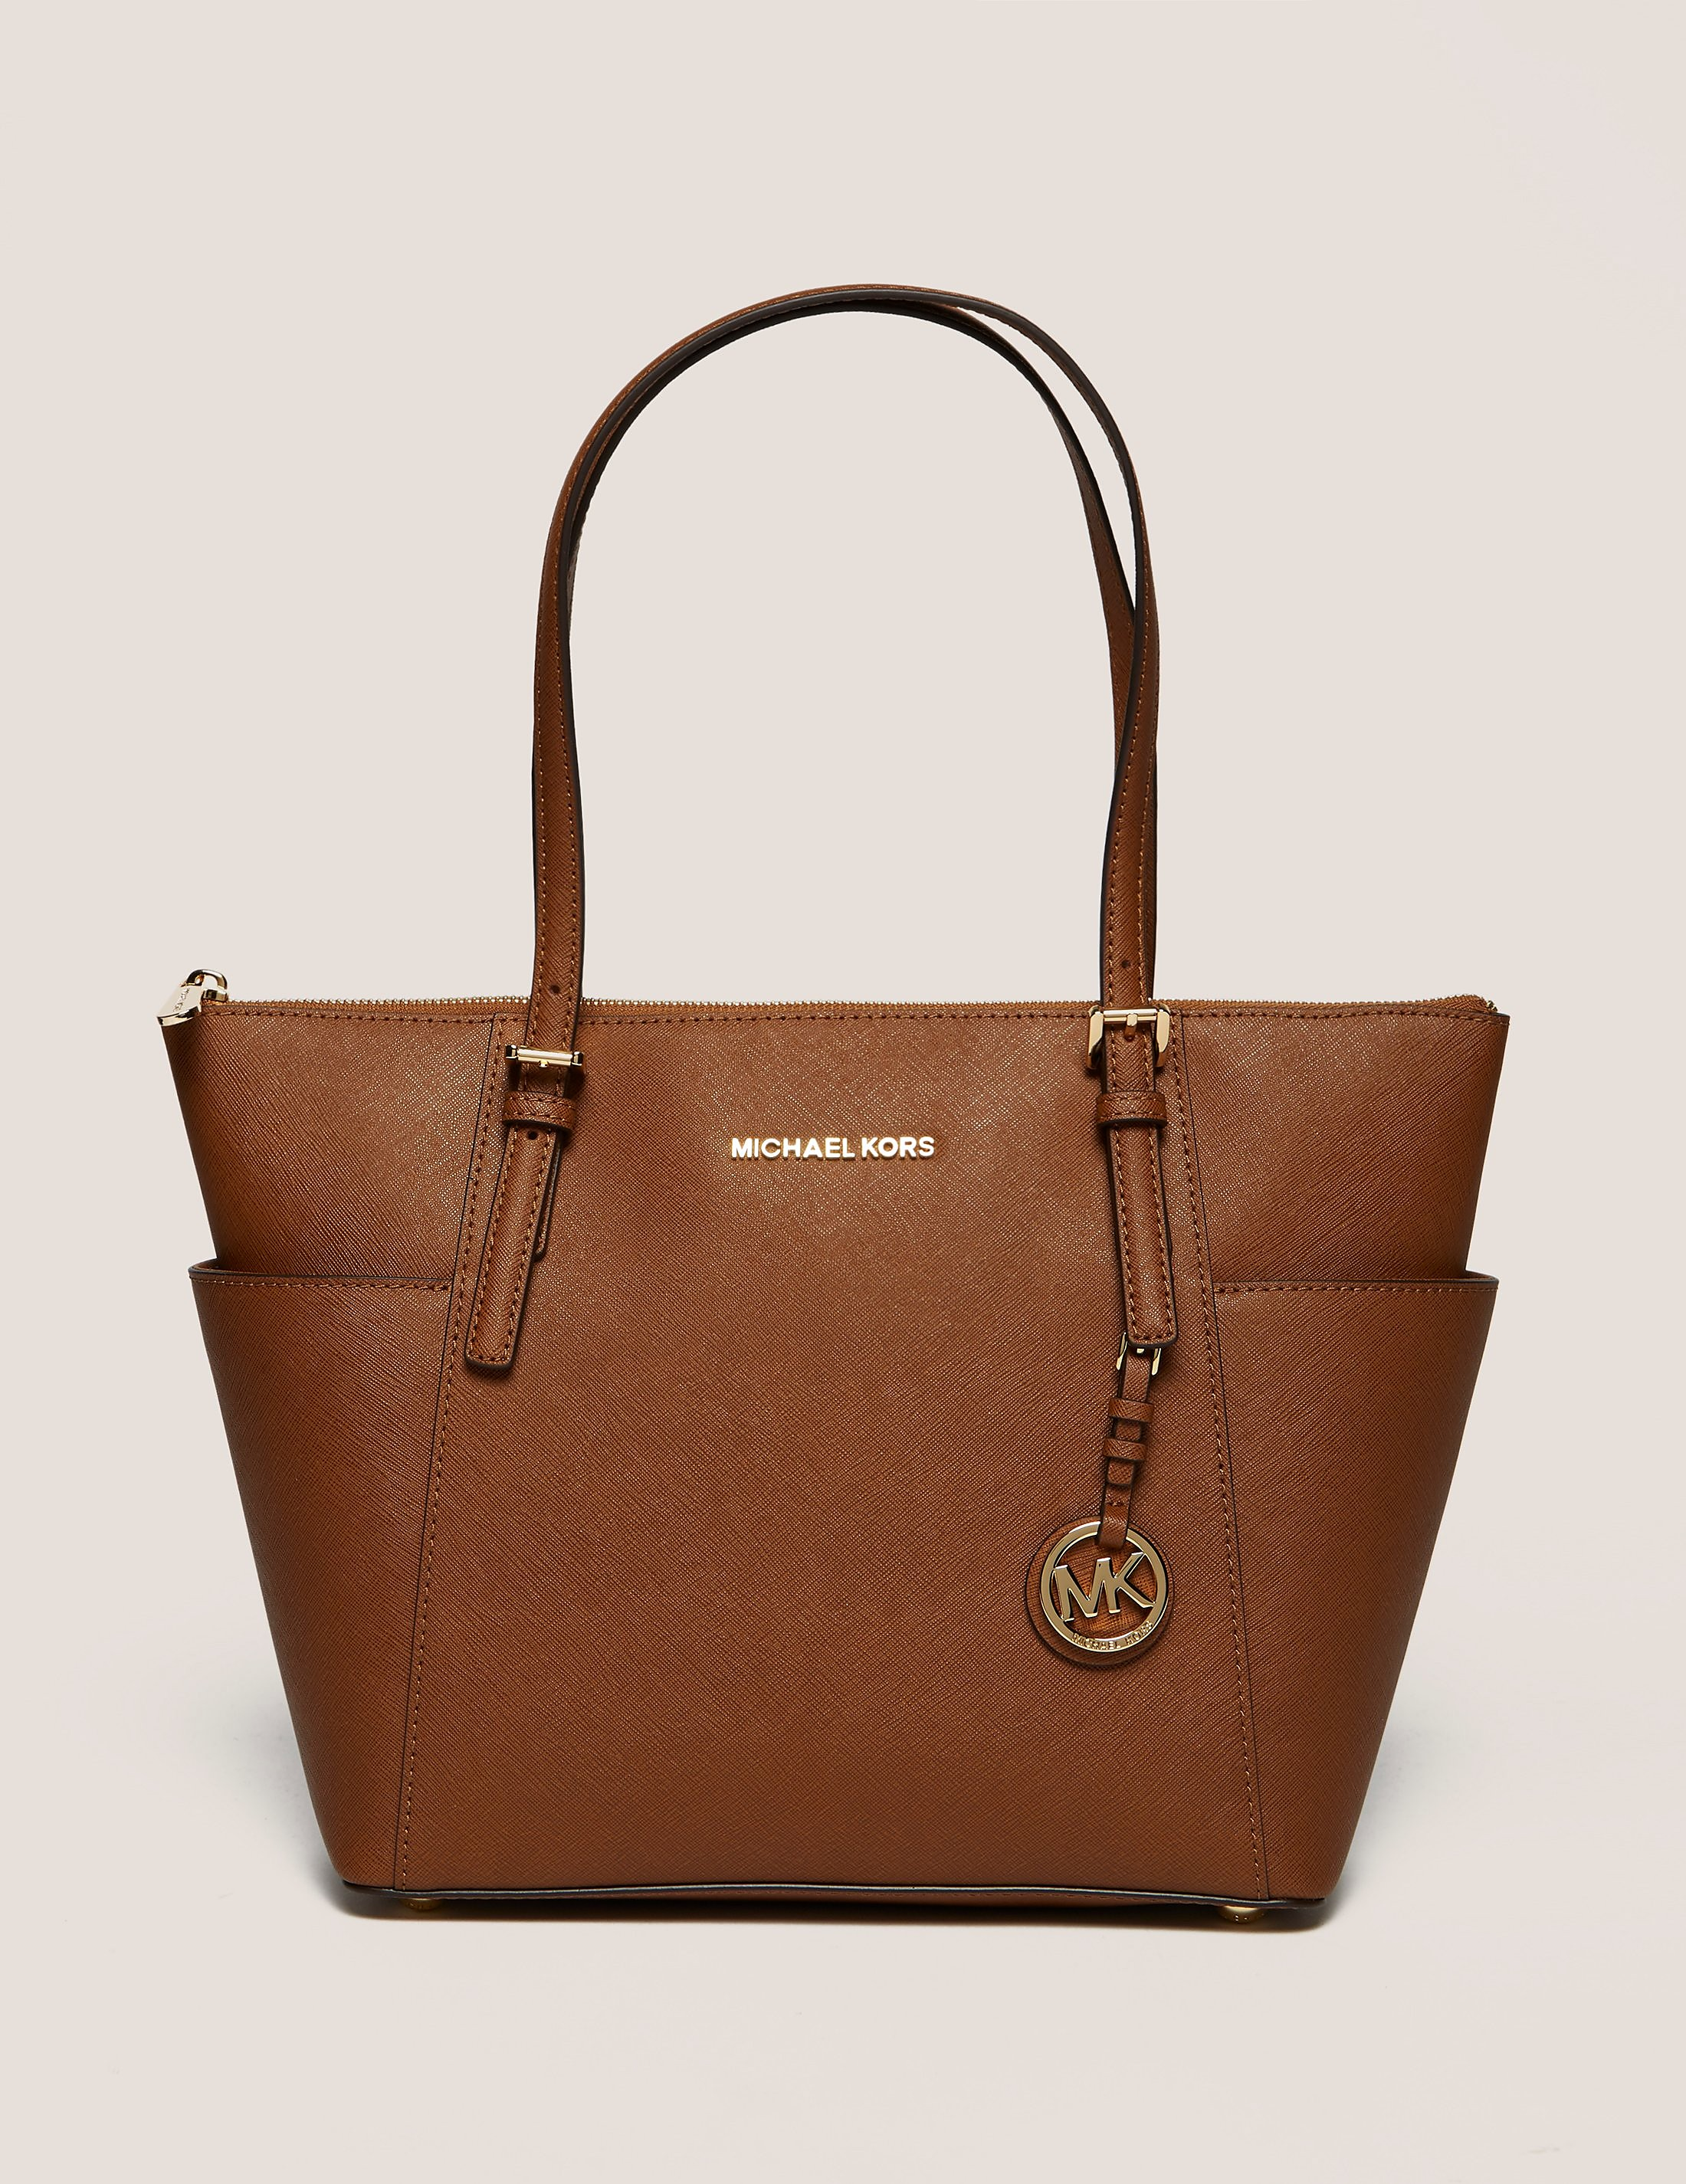 Michael Kors Jet Set Item East West Tote